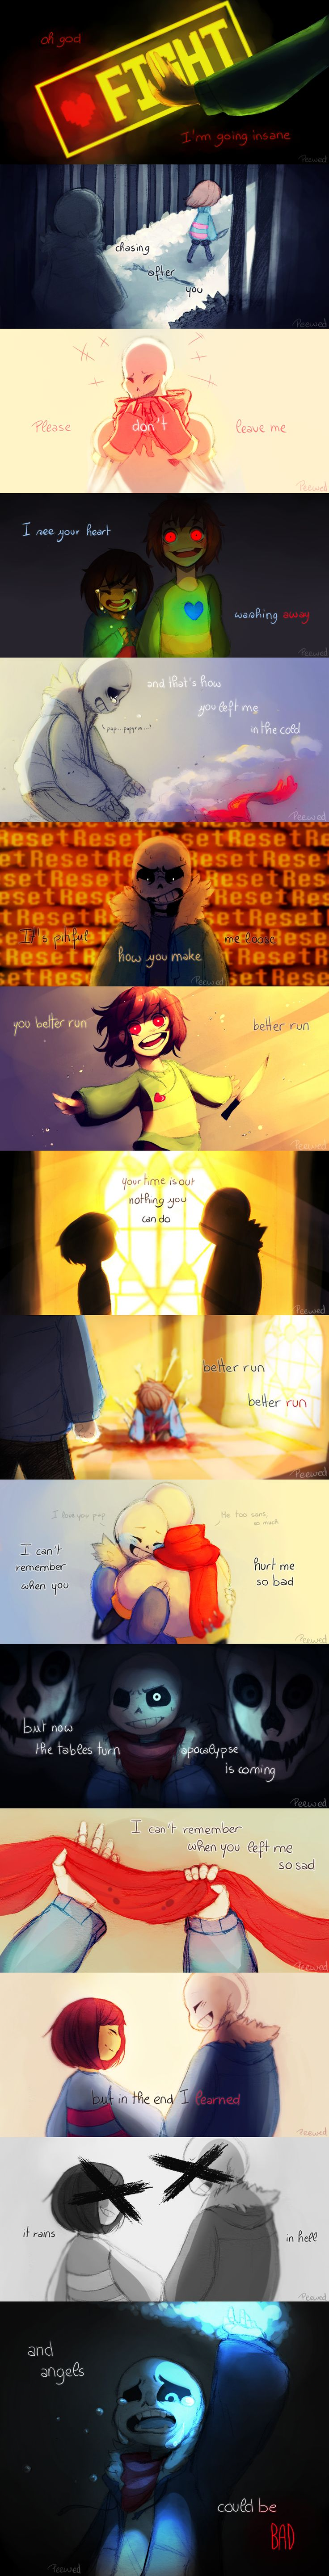 "[UNDERTALE MV] Angels by Peewed on DeviantArt>>>The song used is ""Angels"" by vicetone"